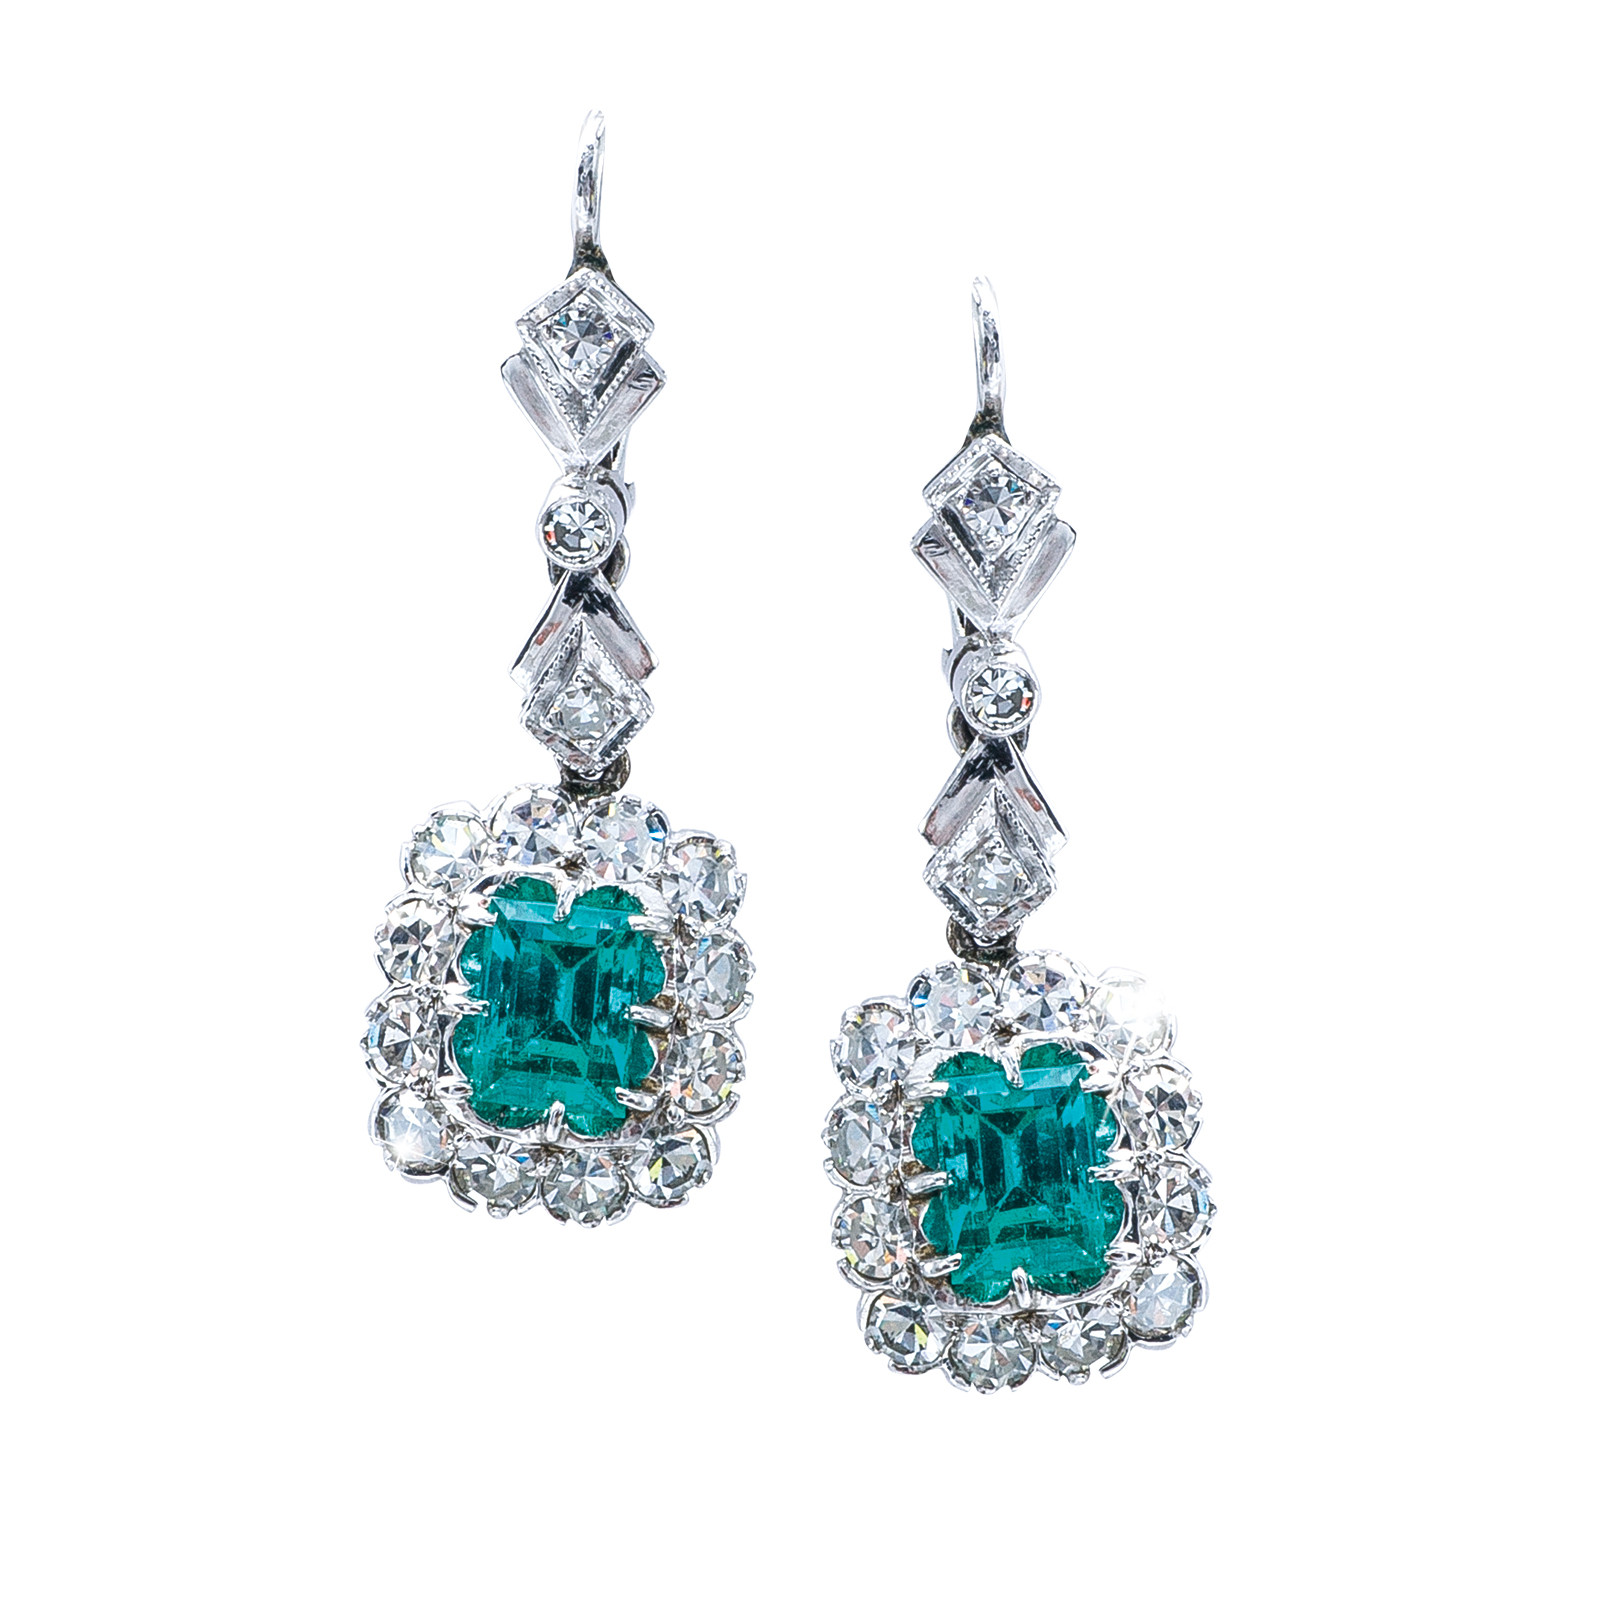 2.05 ctw emerald & diamond